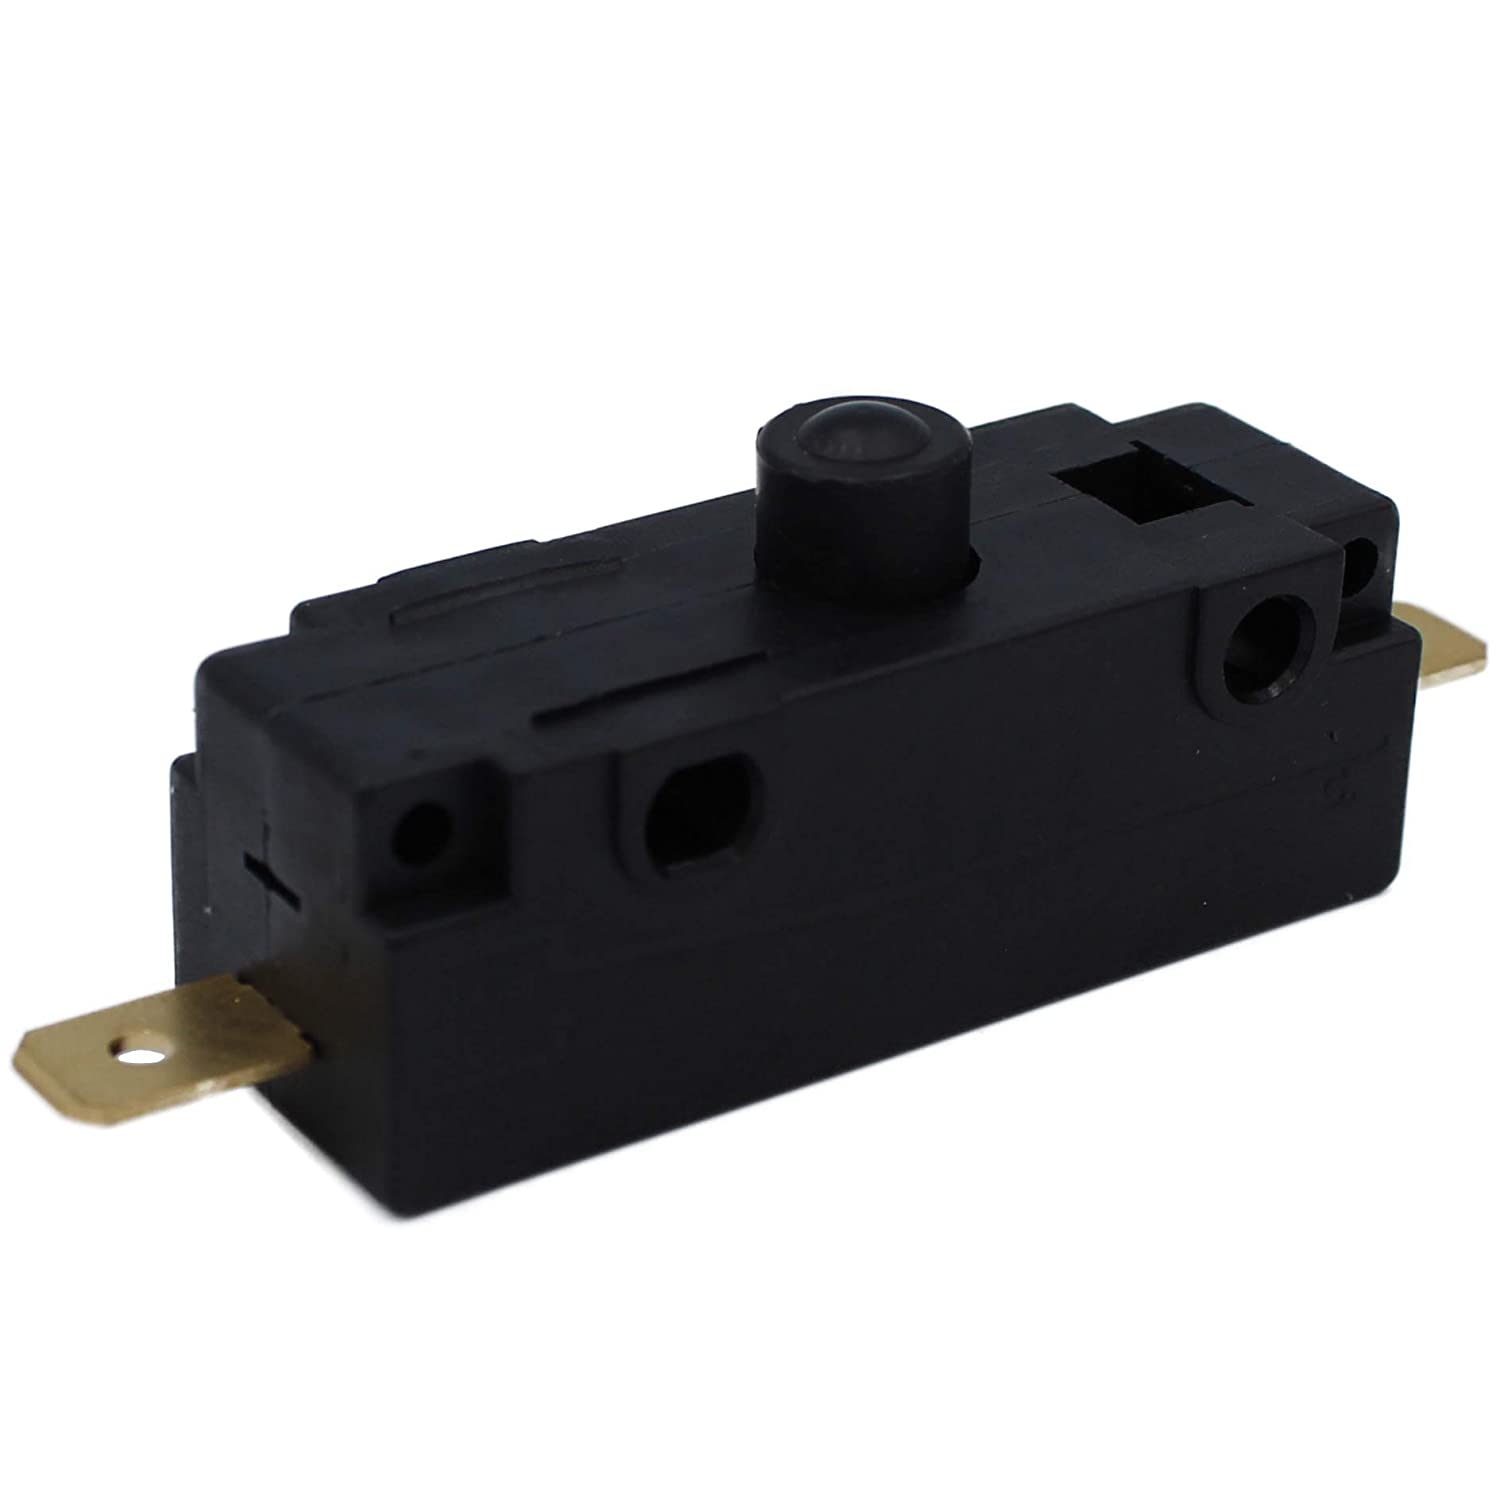 Supplying Demand WD21X10261 Interlock Switch Fits WD21X0557 WD21X557 Compatible With GE Dryers & Dishwashers